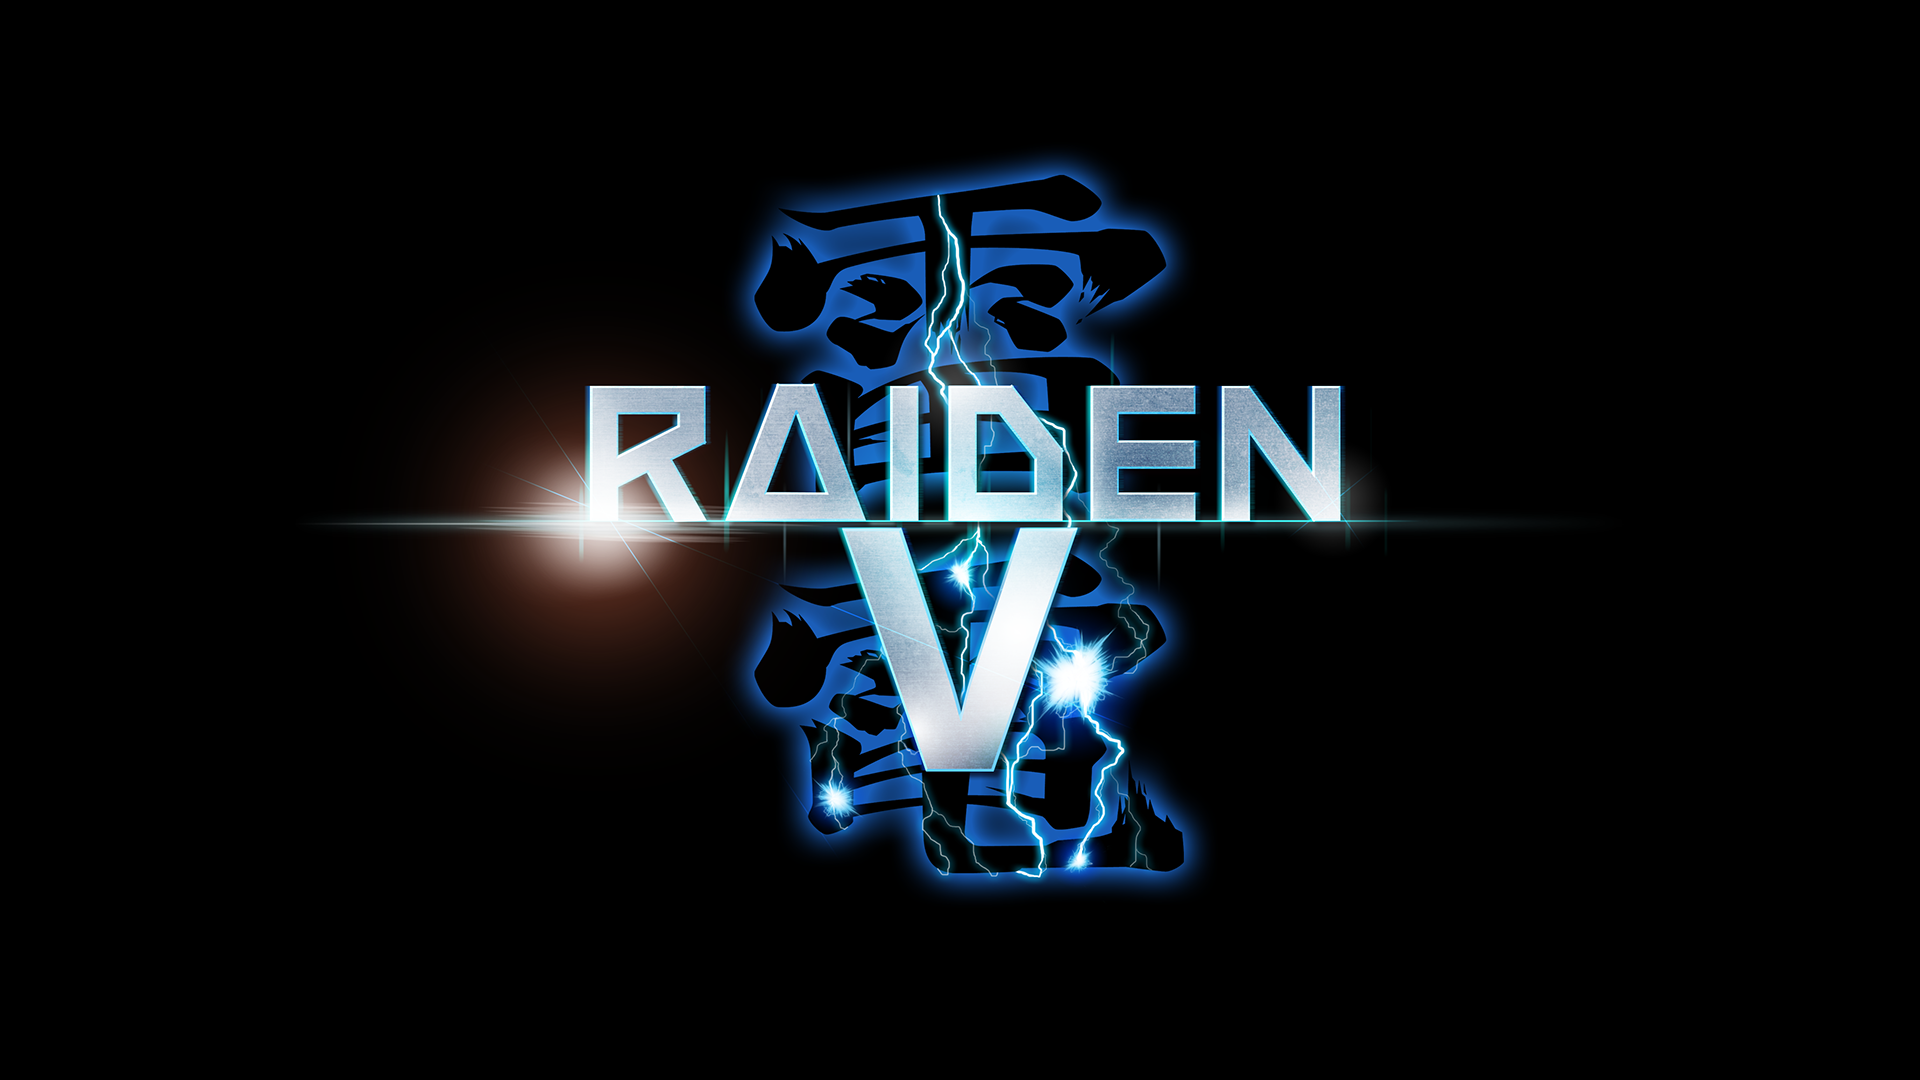 レジェンド achievement for Raiden V on Xbox One